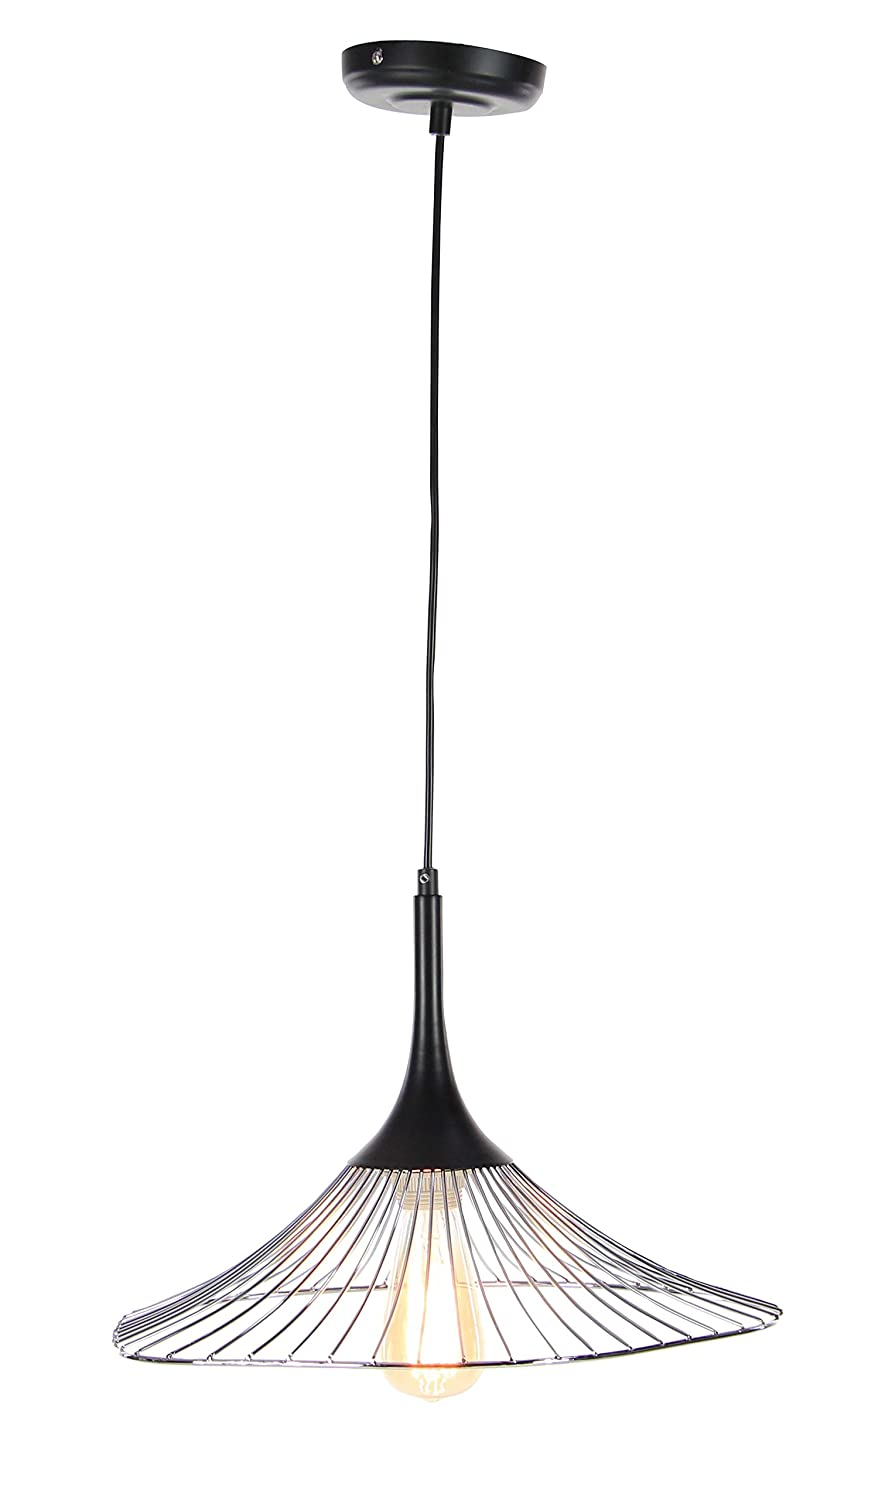 Deco 79 59292 Iron Cone-Shaped Pendant Lamp with Bulb Black